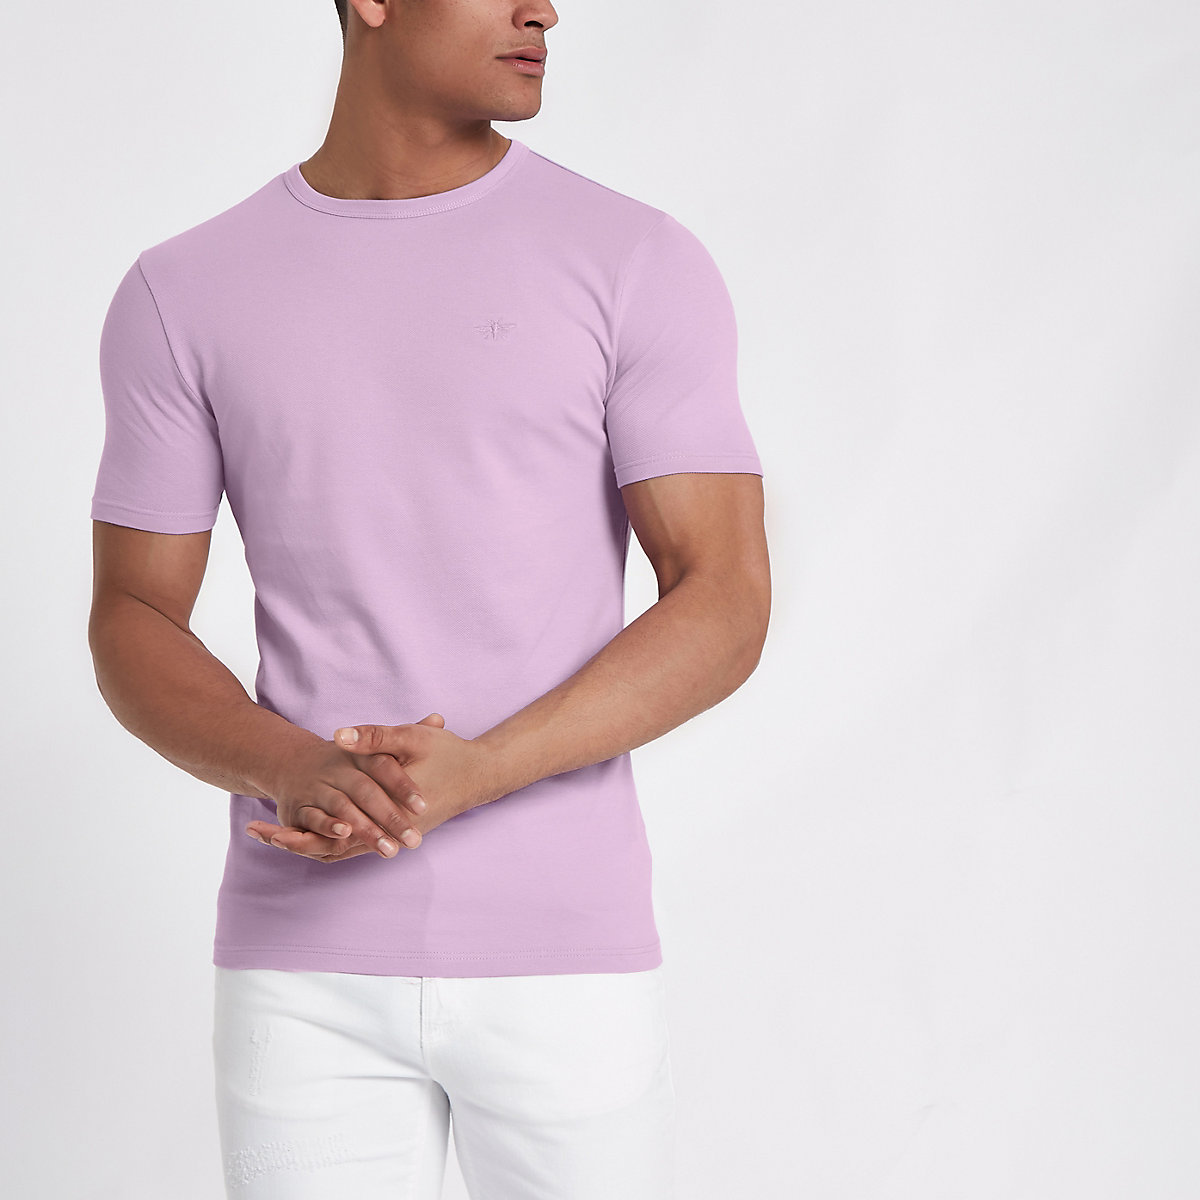 Lilac muscle fit wasp embroidered T-shirt